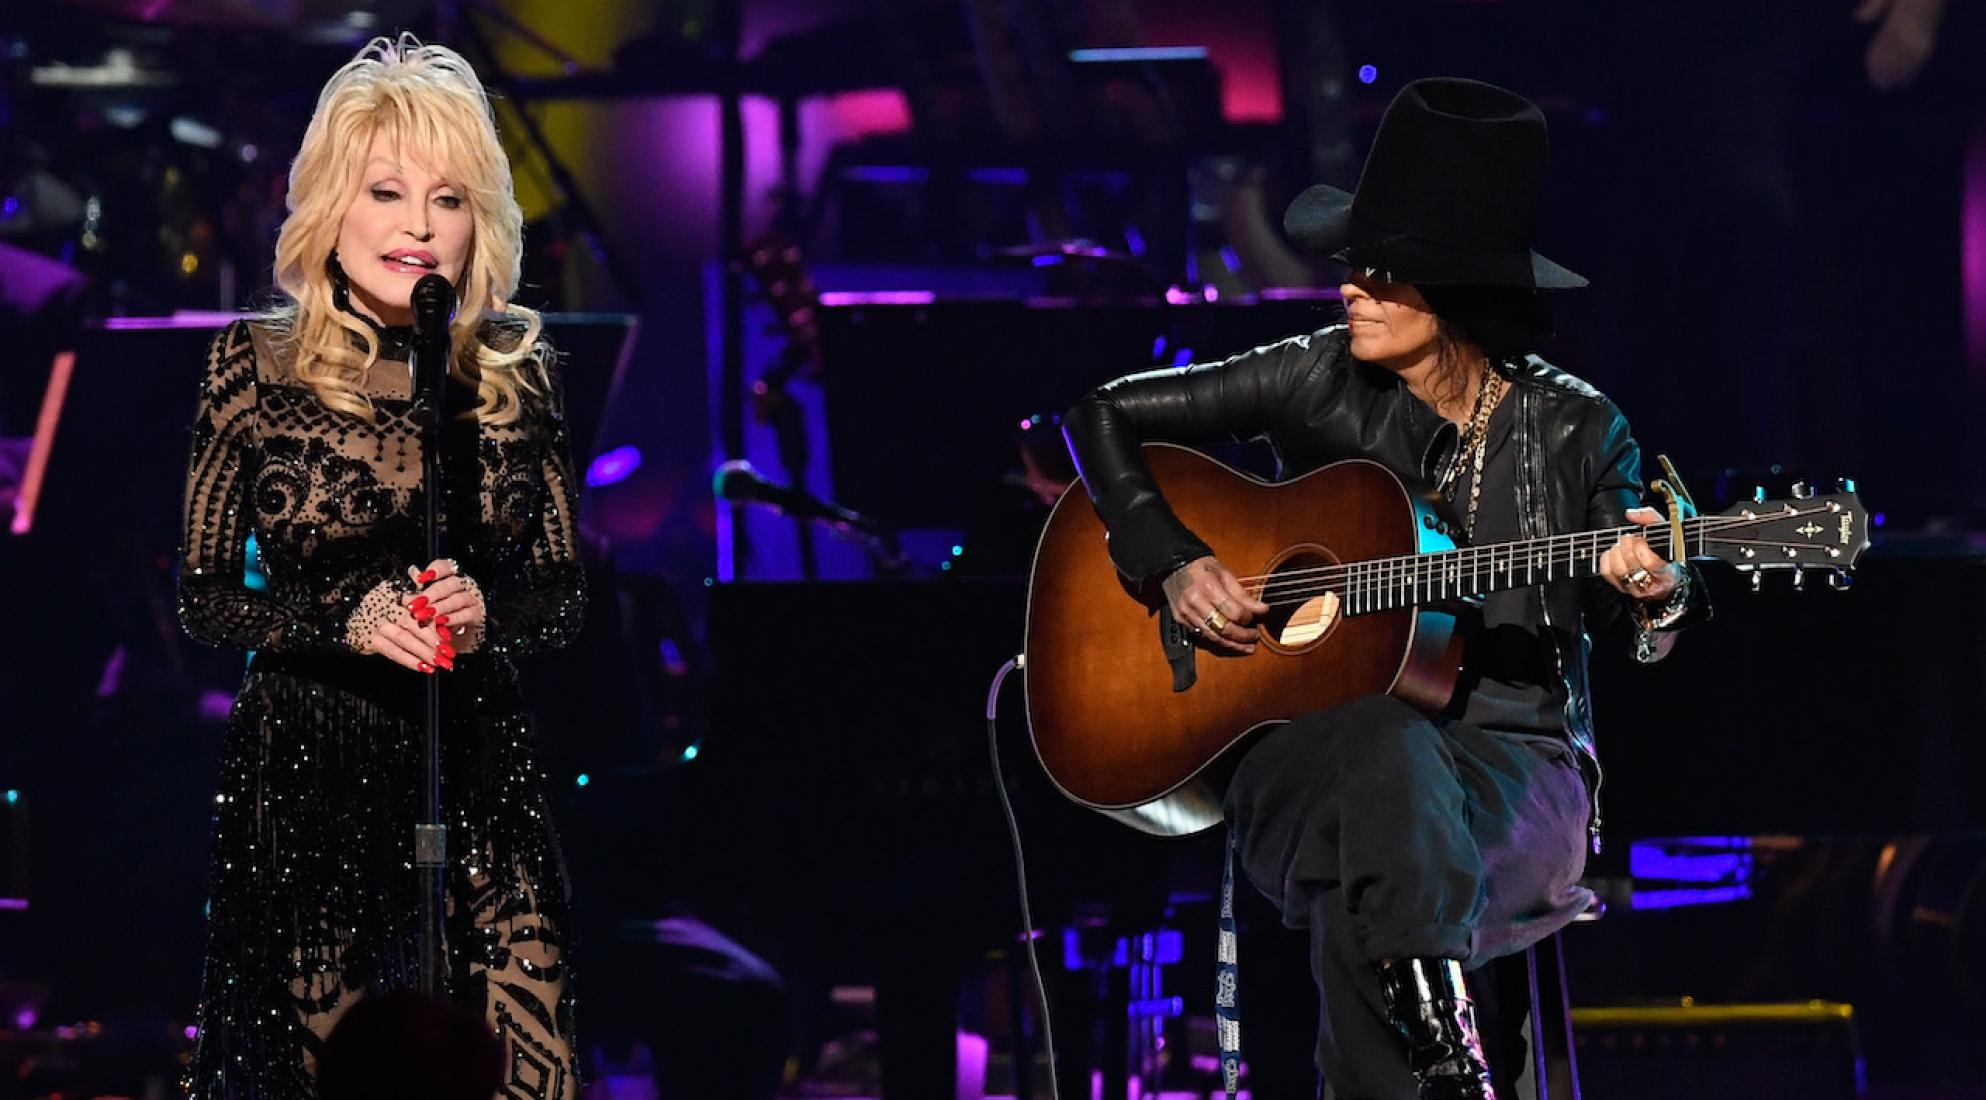 Dolly Parton (L) and Linda Perry (R) perform at the 2019 MusiCares Person of the Year event